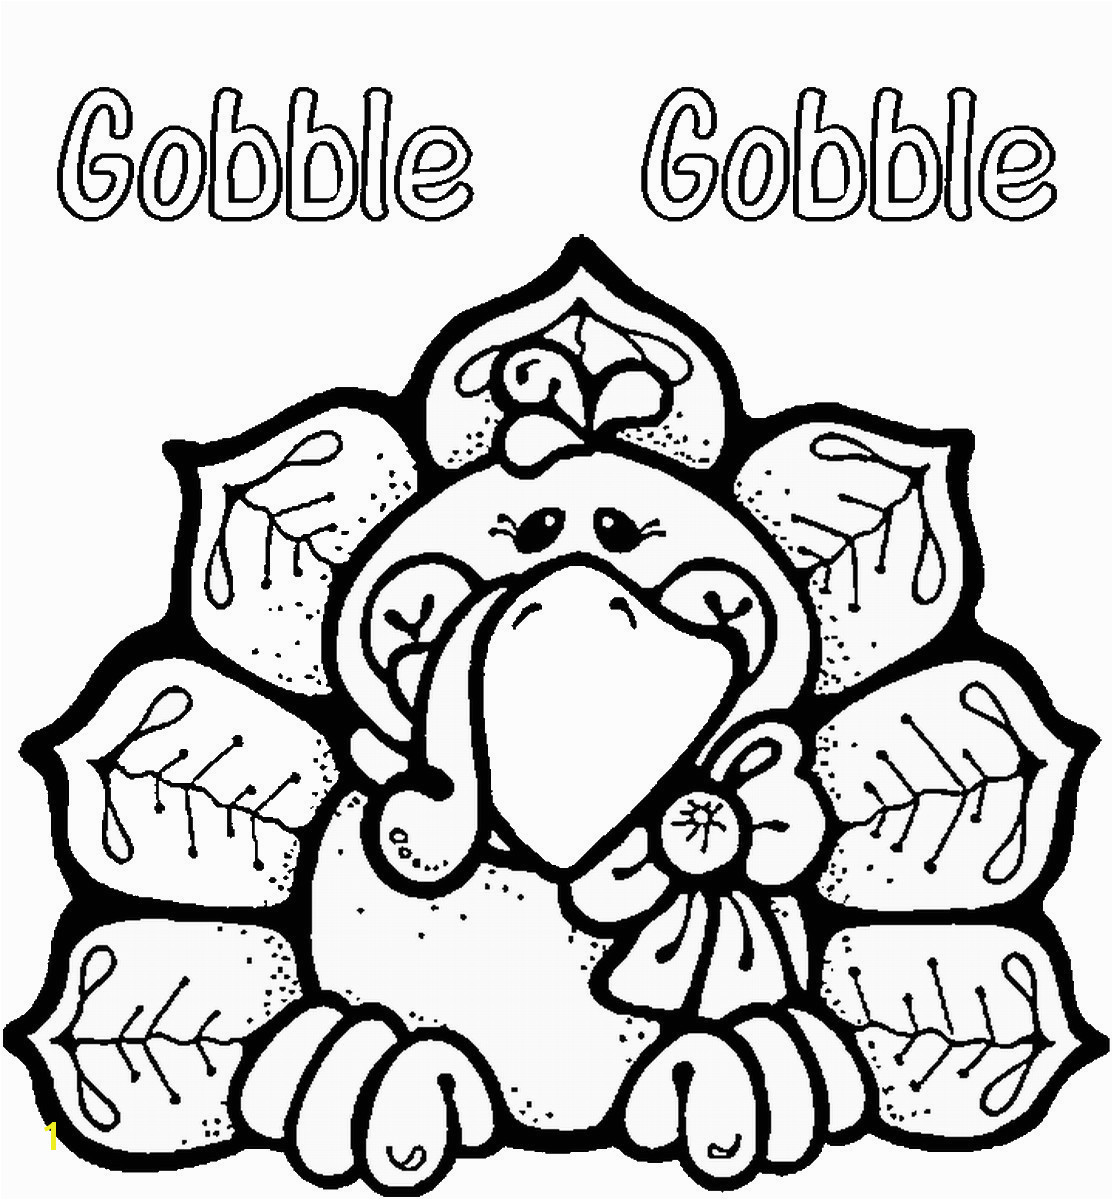 Free Coloring Pages for Adults to Print Out Unique Free Coloring Pages for Thanksgiving Printables